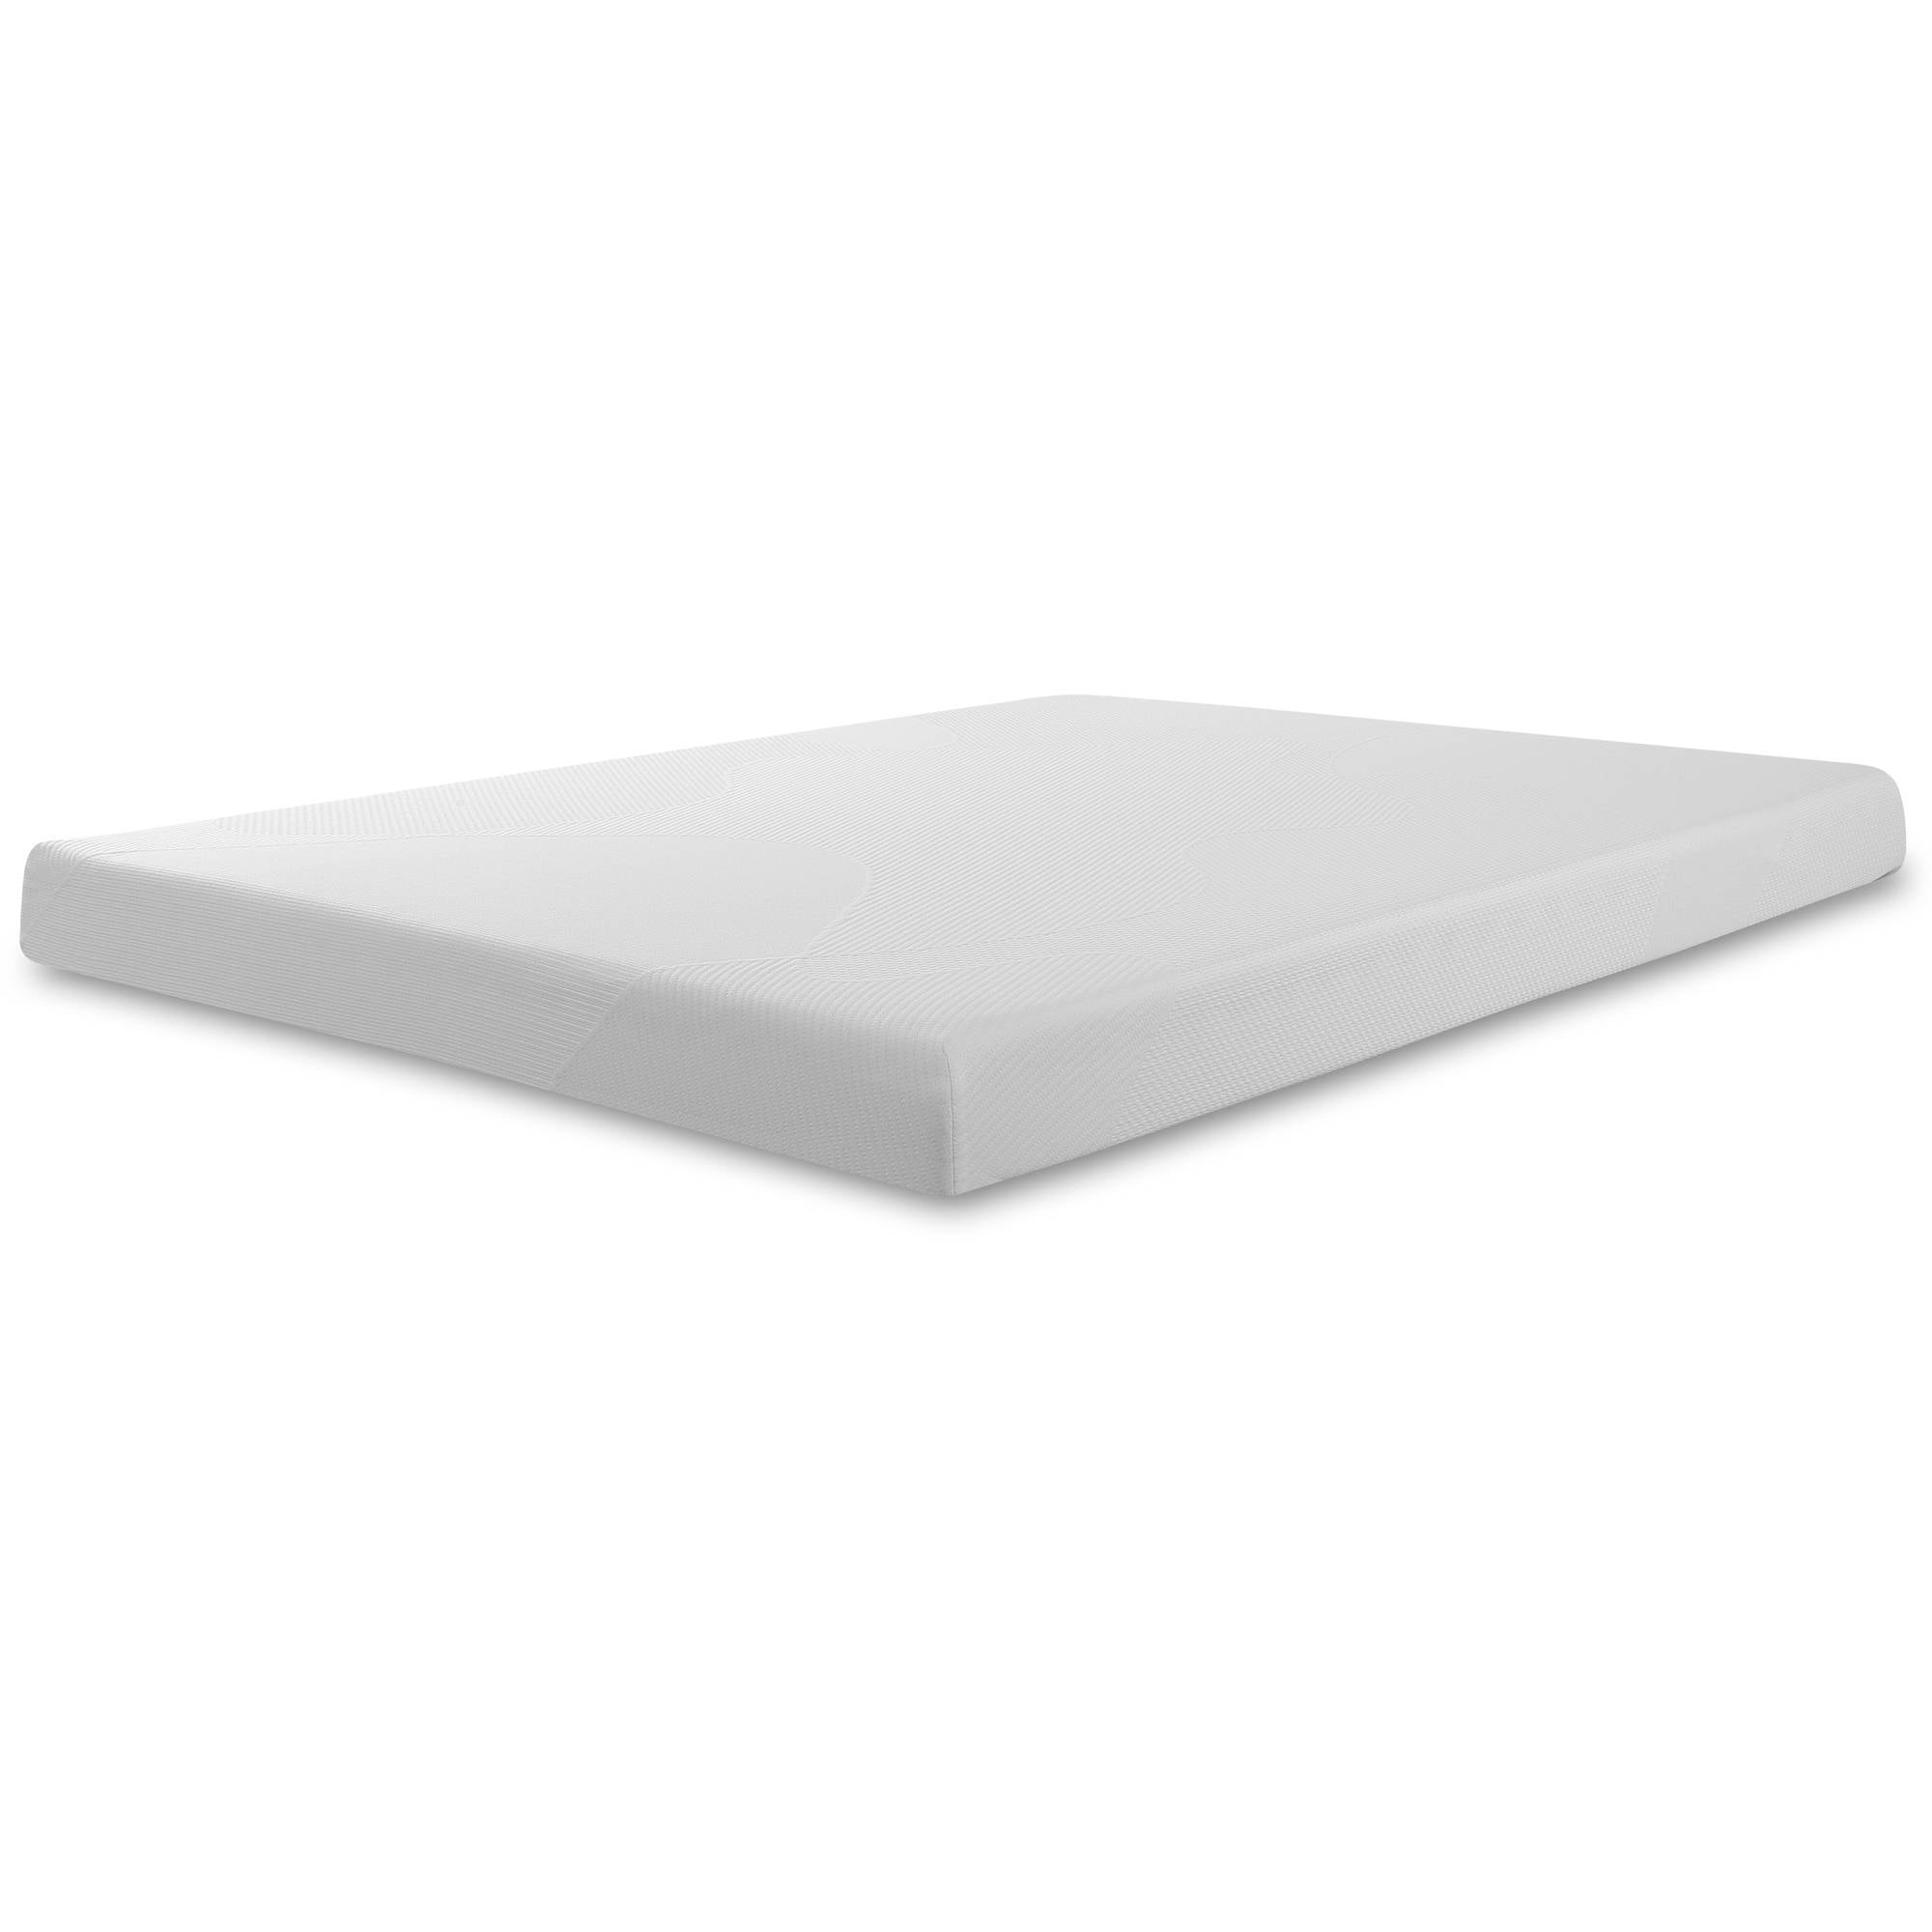 Spa sensation 6 39 39 memory foam mattress xl twin full queen for Ukuran box salon 8 inch